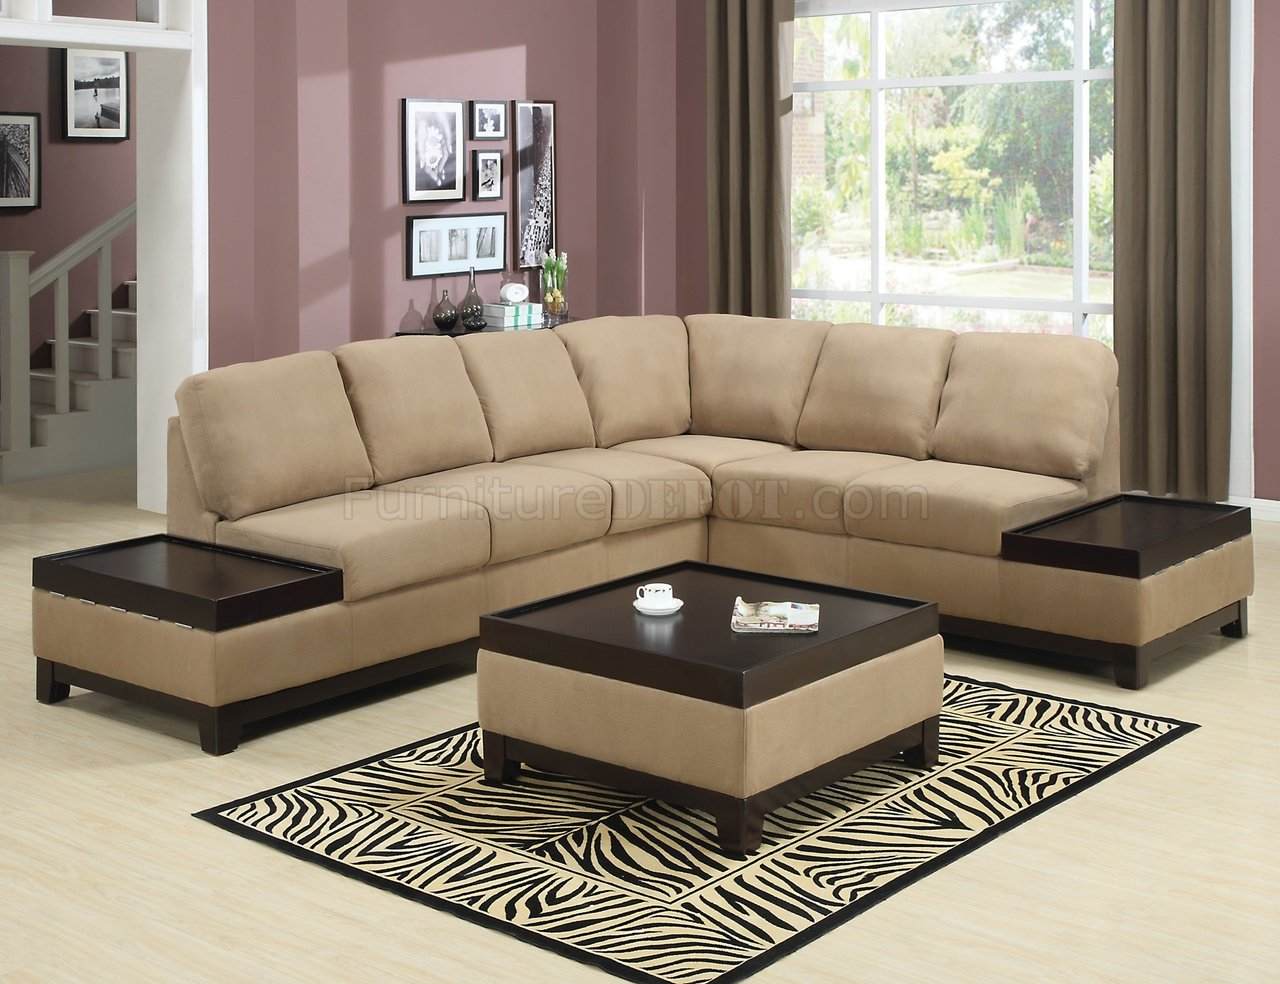 contemporary sofa with wood trim buy cheap set uk mocha padded suede modern sectional w dark